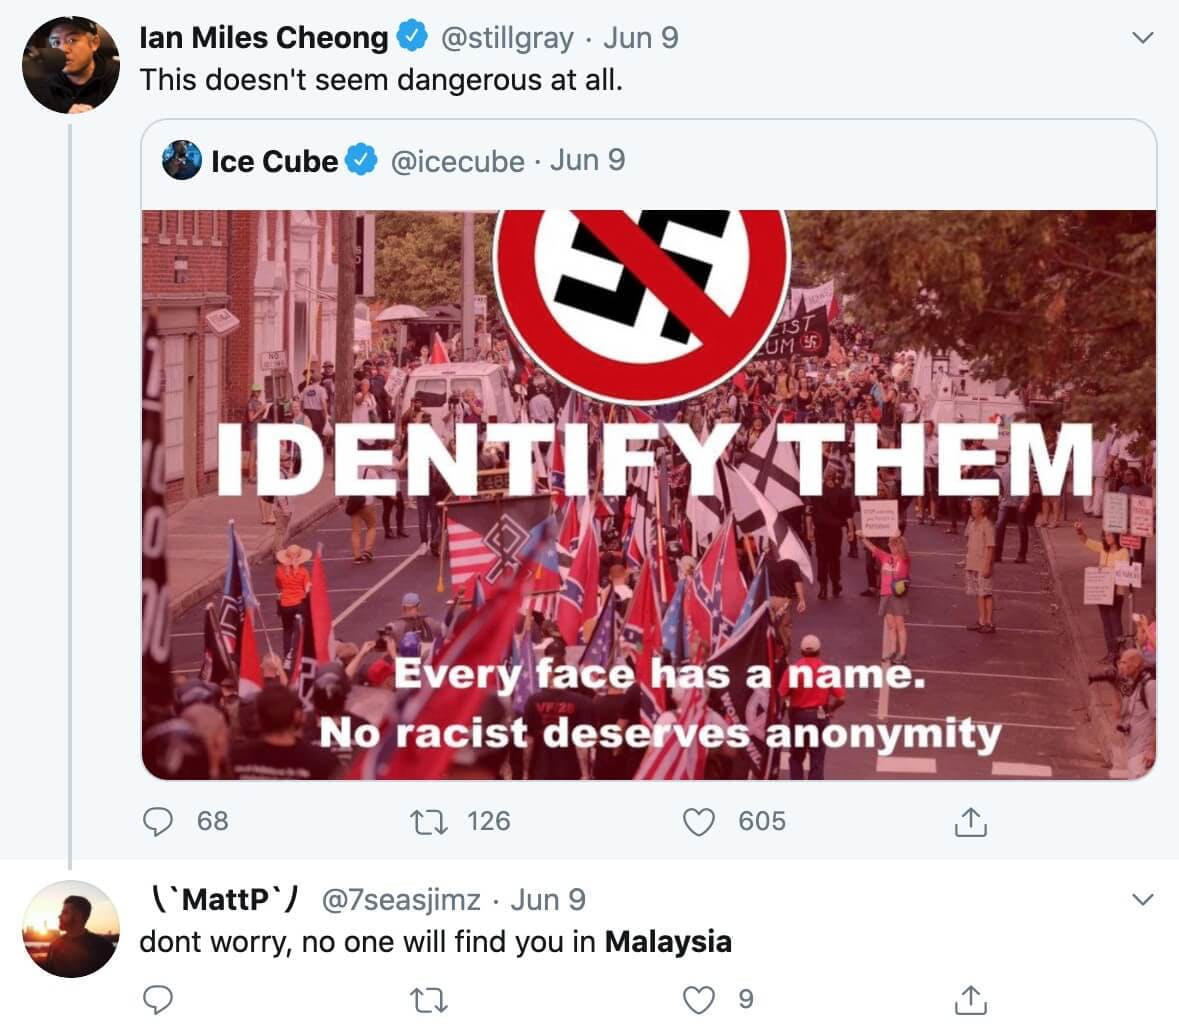 A reply to a political tweet from Ian Miles Cheong saying he won't have to worry about it in Malaysia